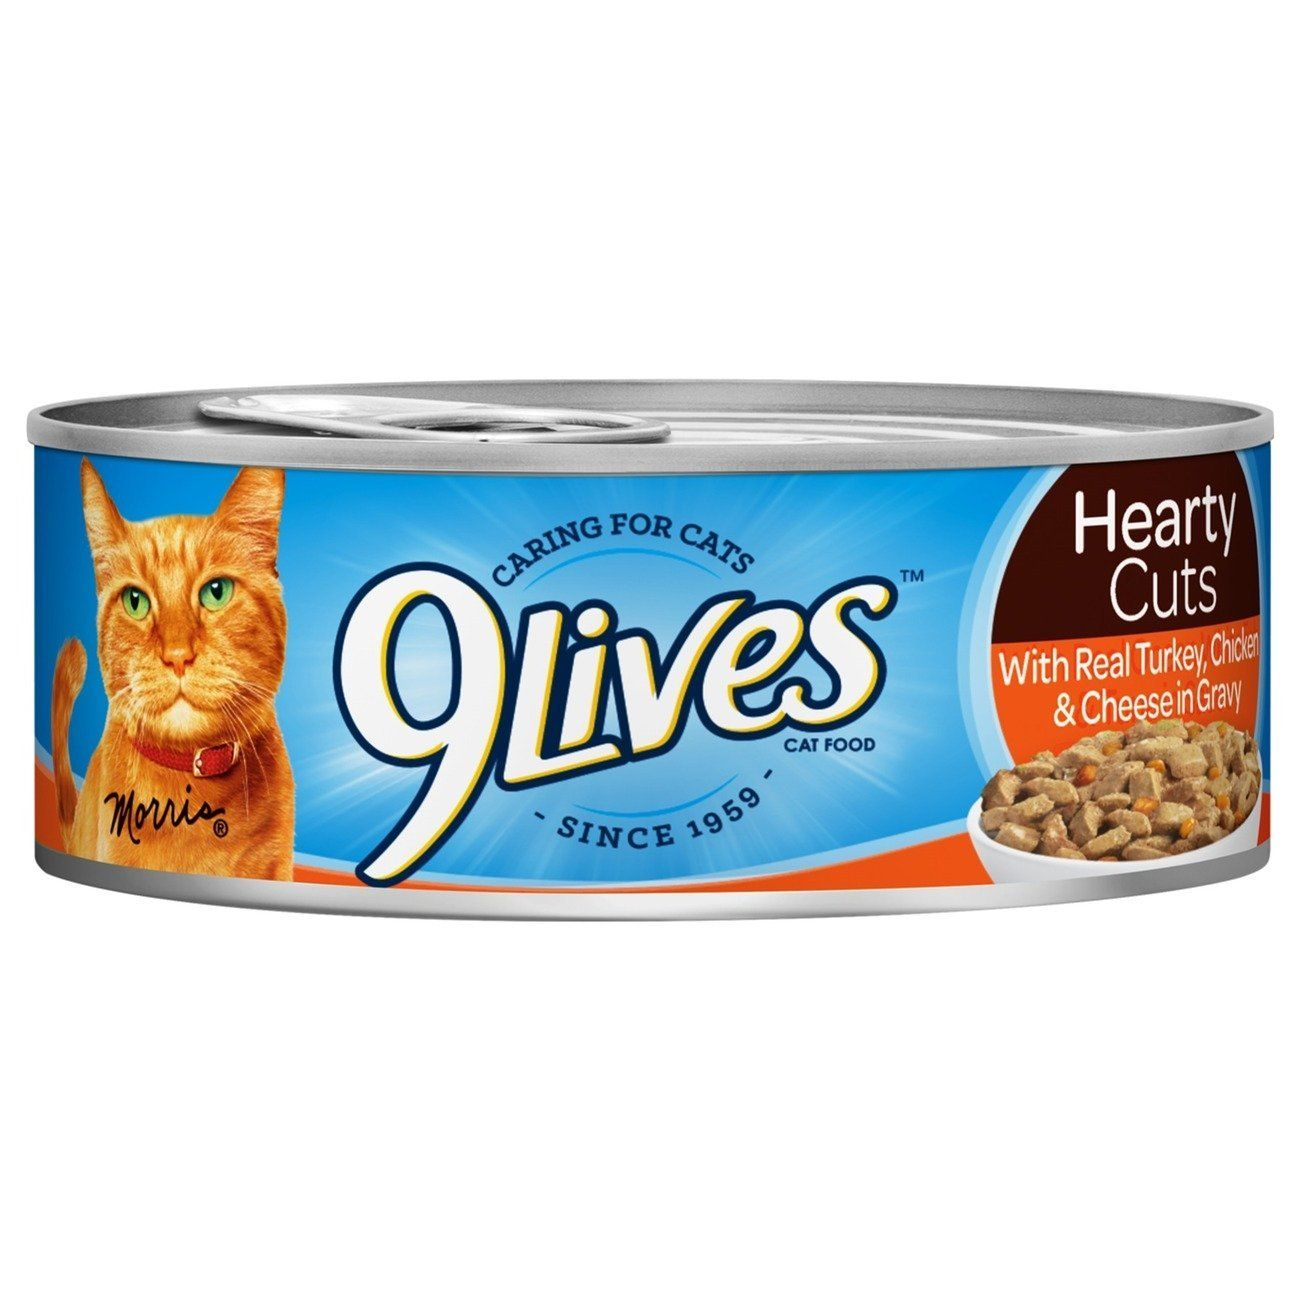 9Lives Hearty Cuts with Real Turkey, Chicken and Cheese in Gravy Wet Cat Food, 5.5oz Cans (Pack of 24) >>> Find out more about the great product at the image link. (This is an affiliate link and I receive a commission for the sales)